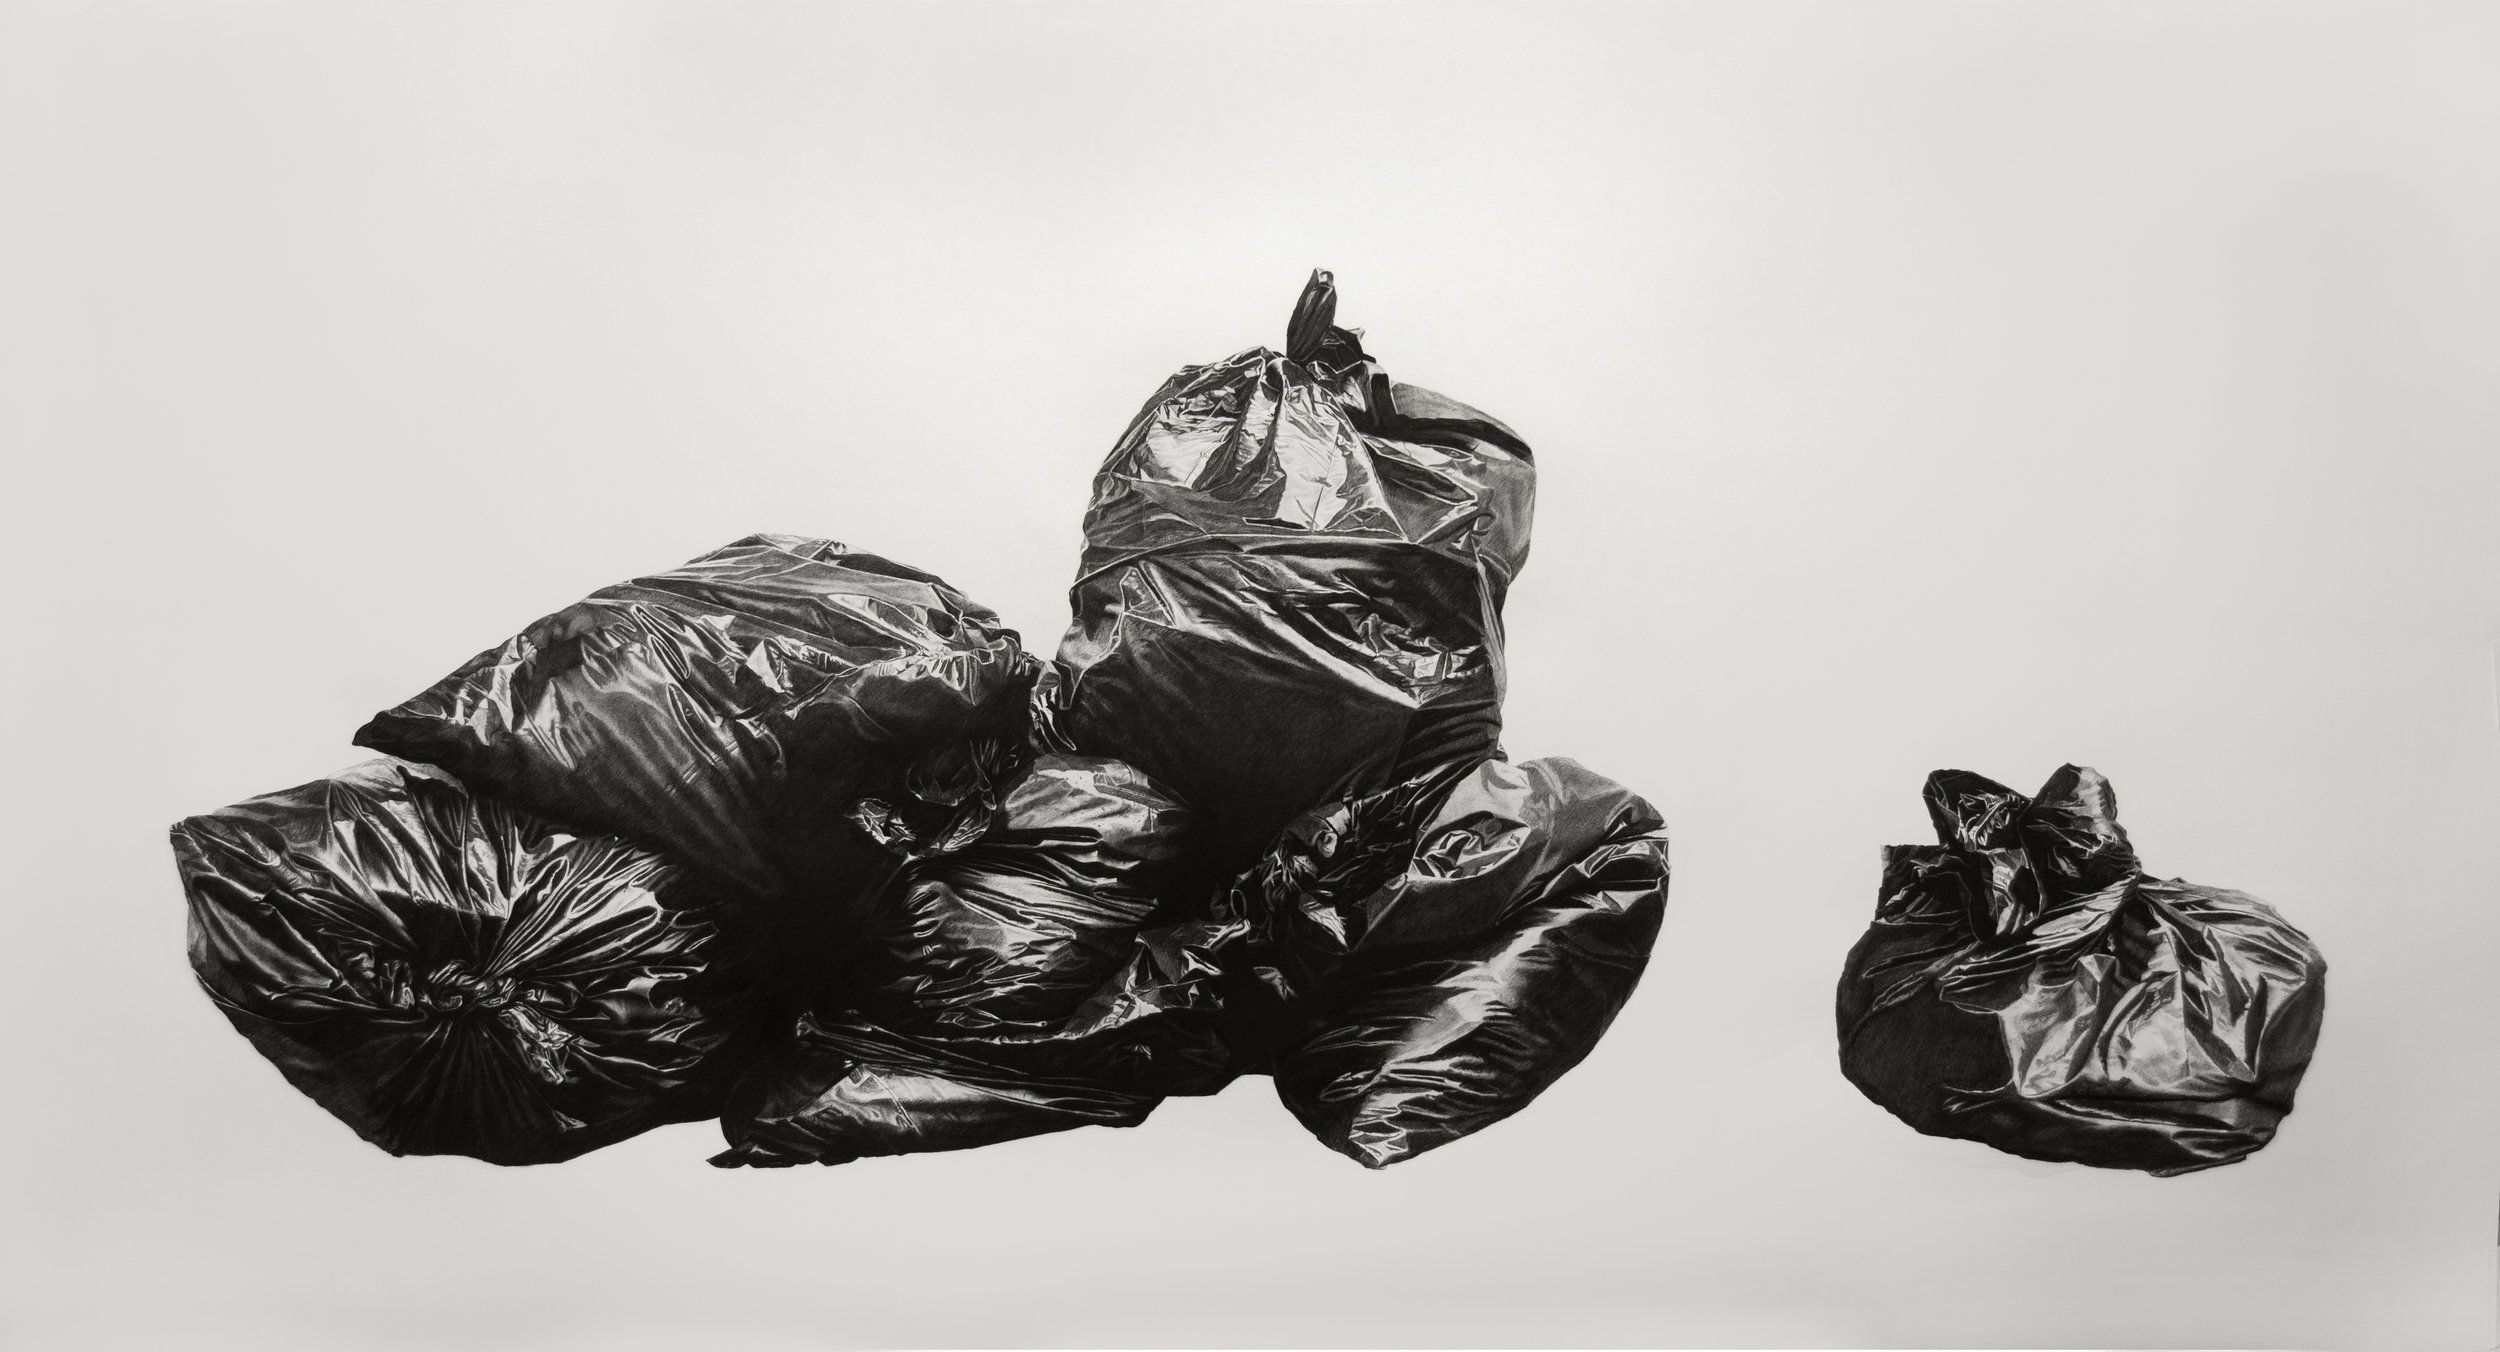 eighborhood Still Life #1, 44x80in, Charcoal & Graphite on Paper